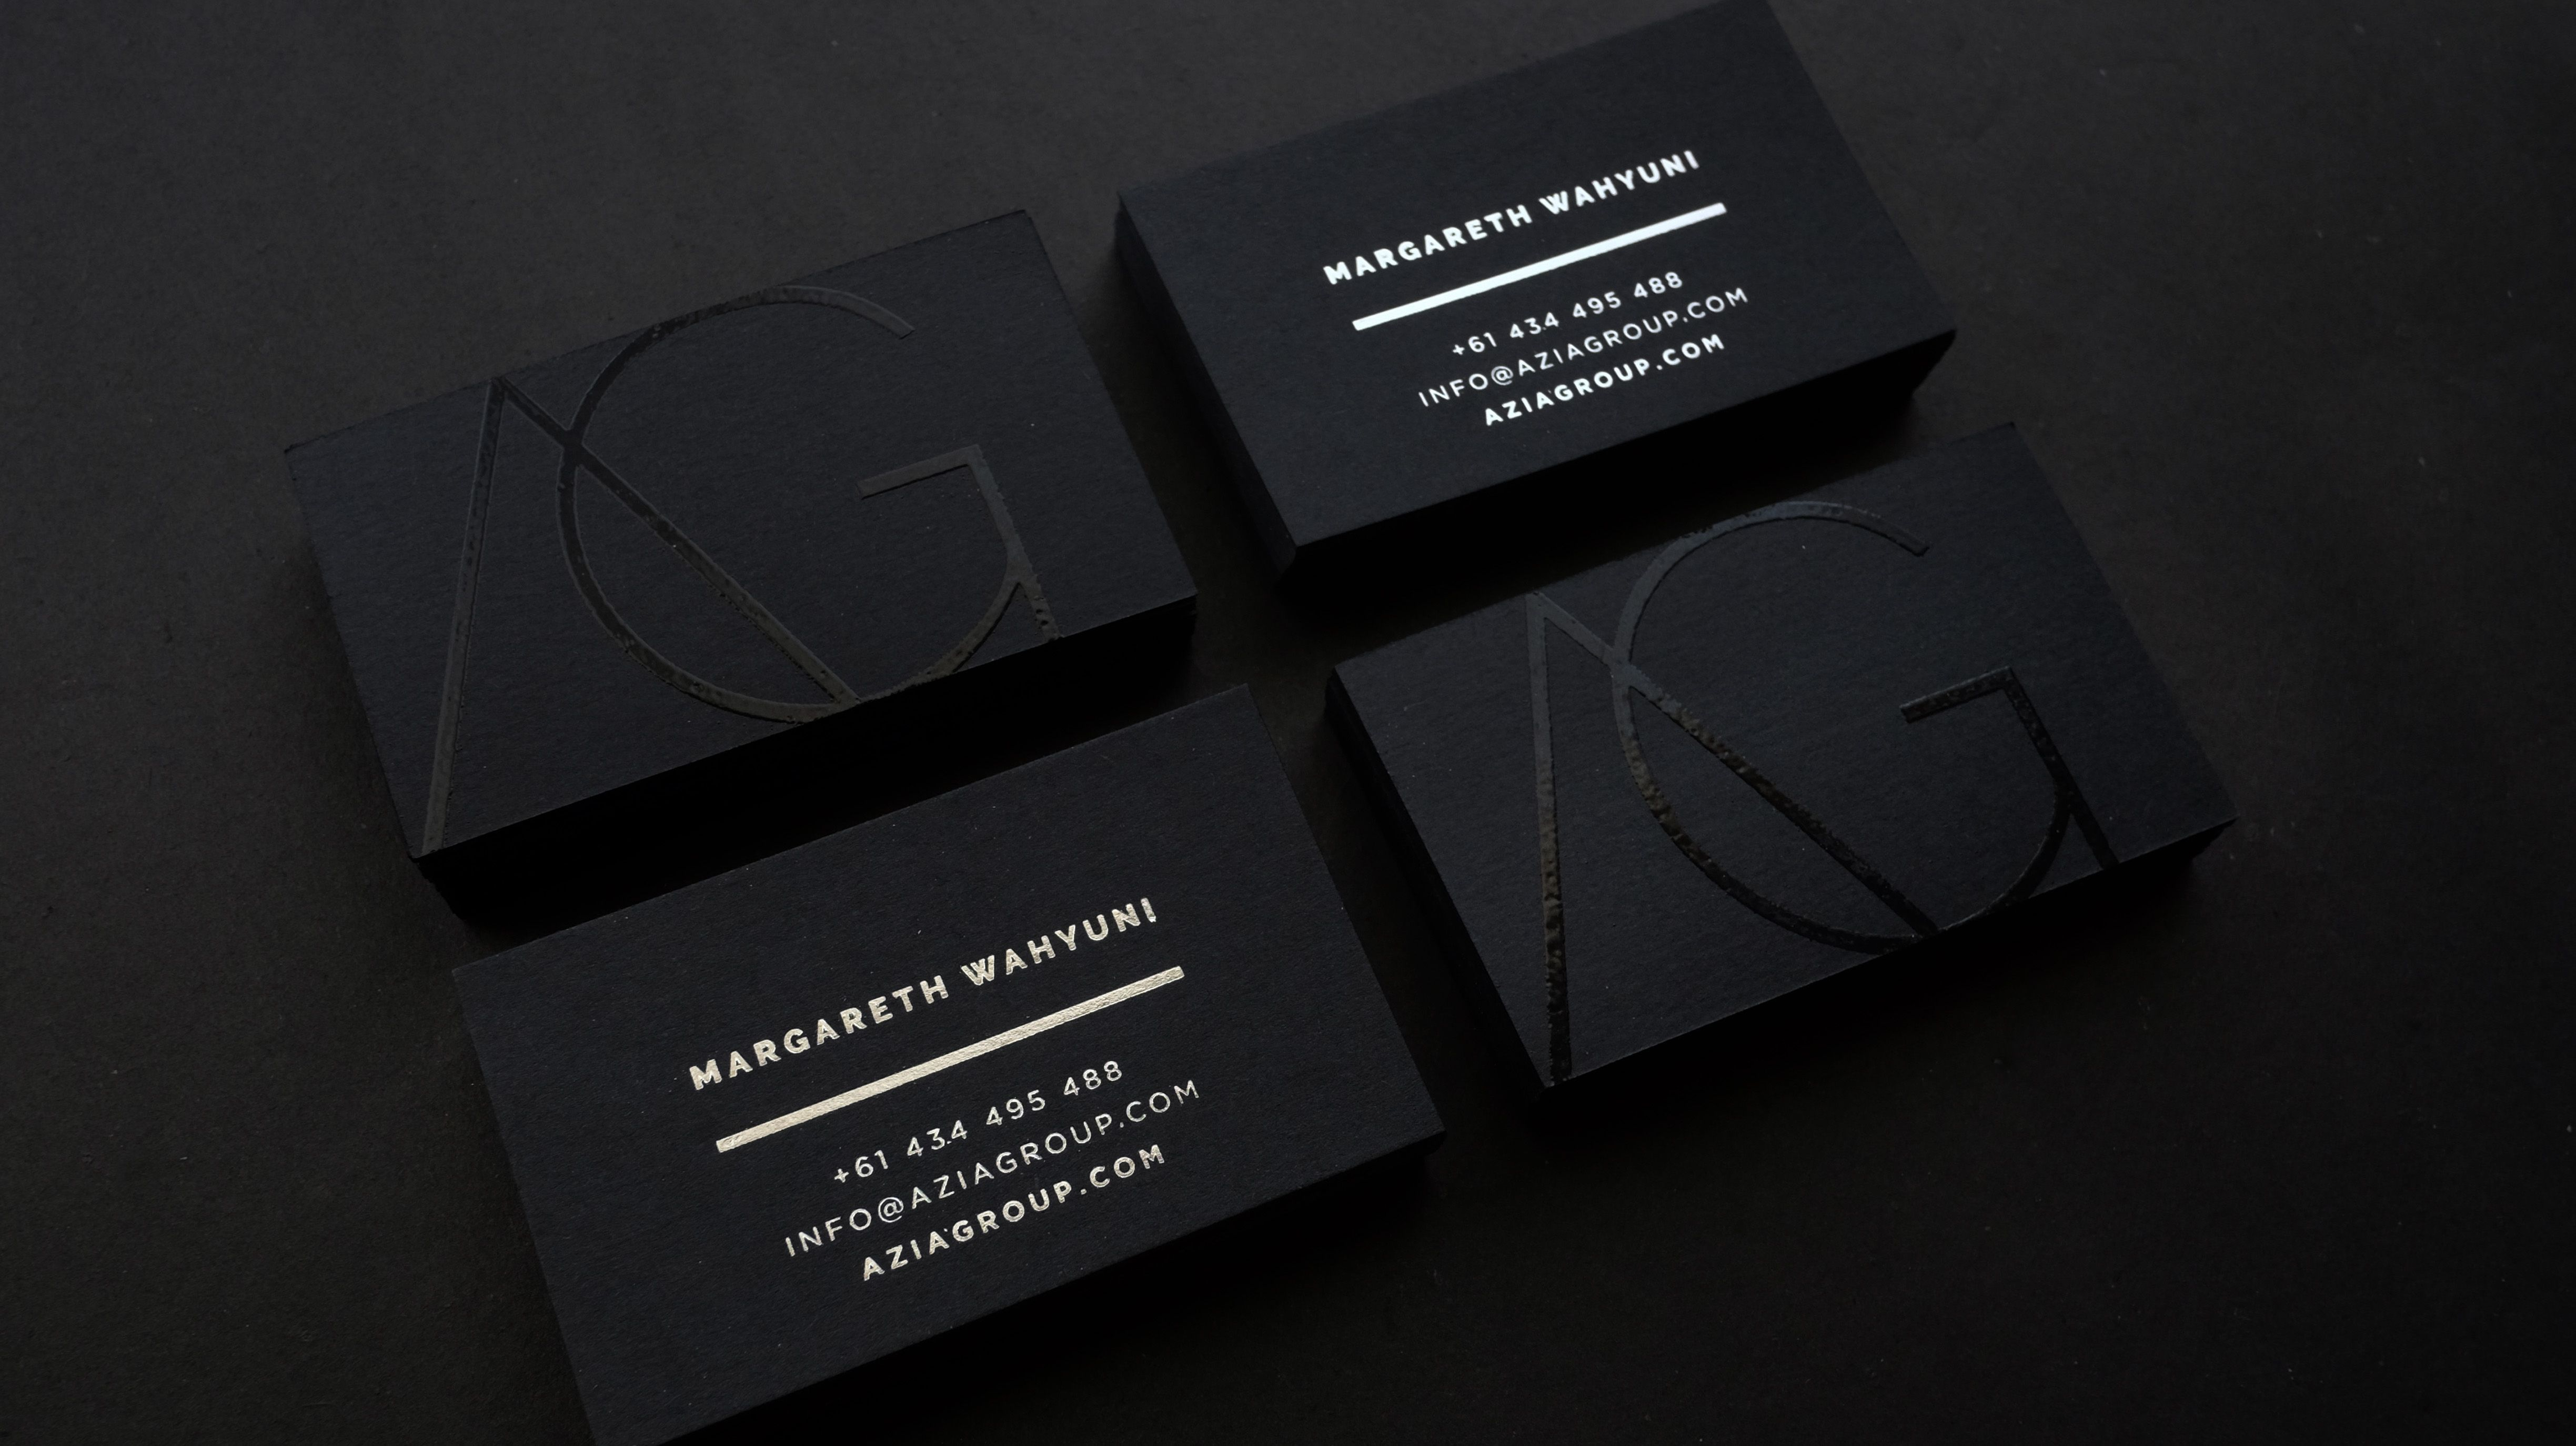 Black love. Azia Group Business Card 2 | Letterpress | Pinterest ...